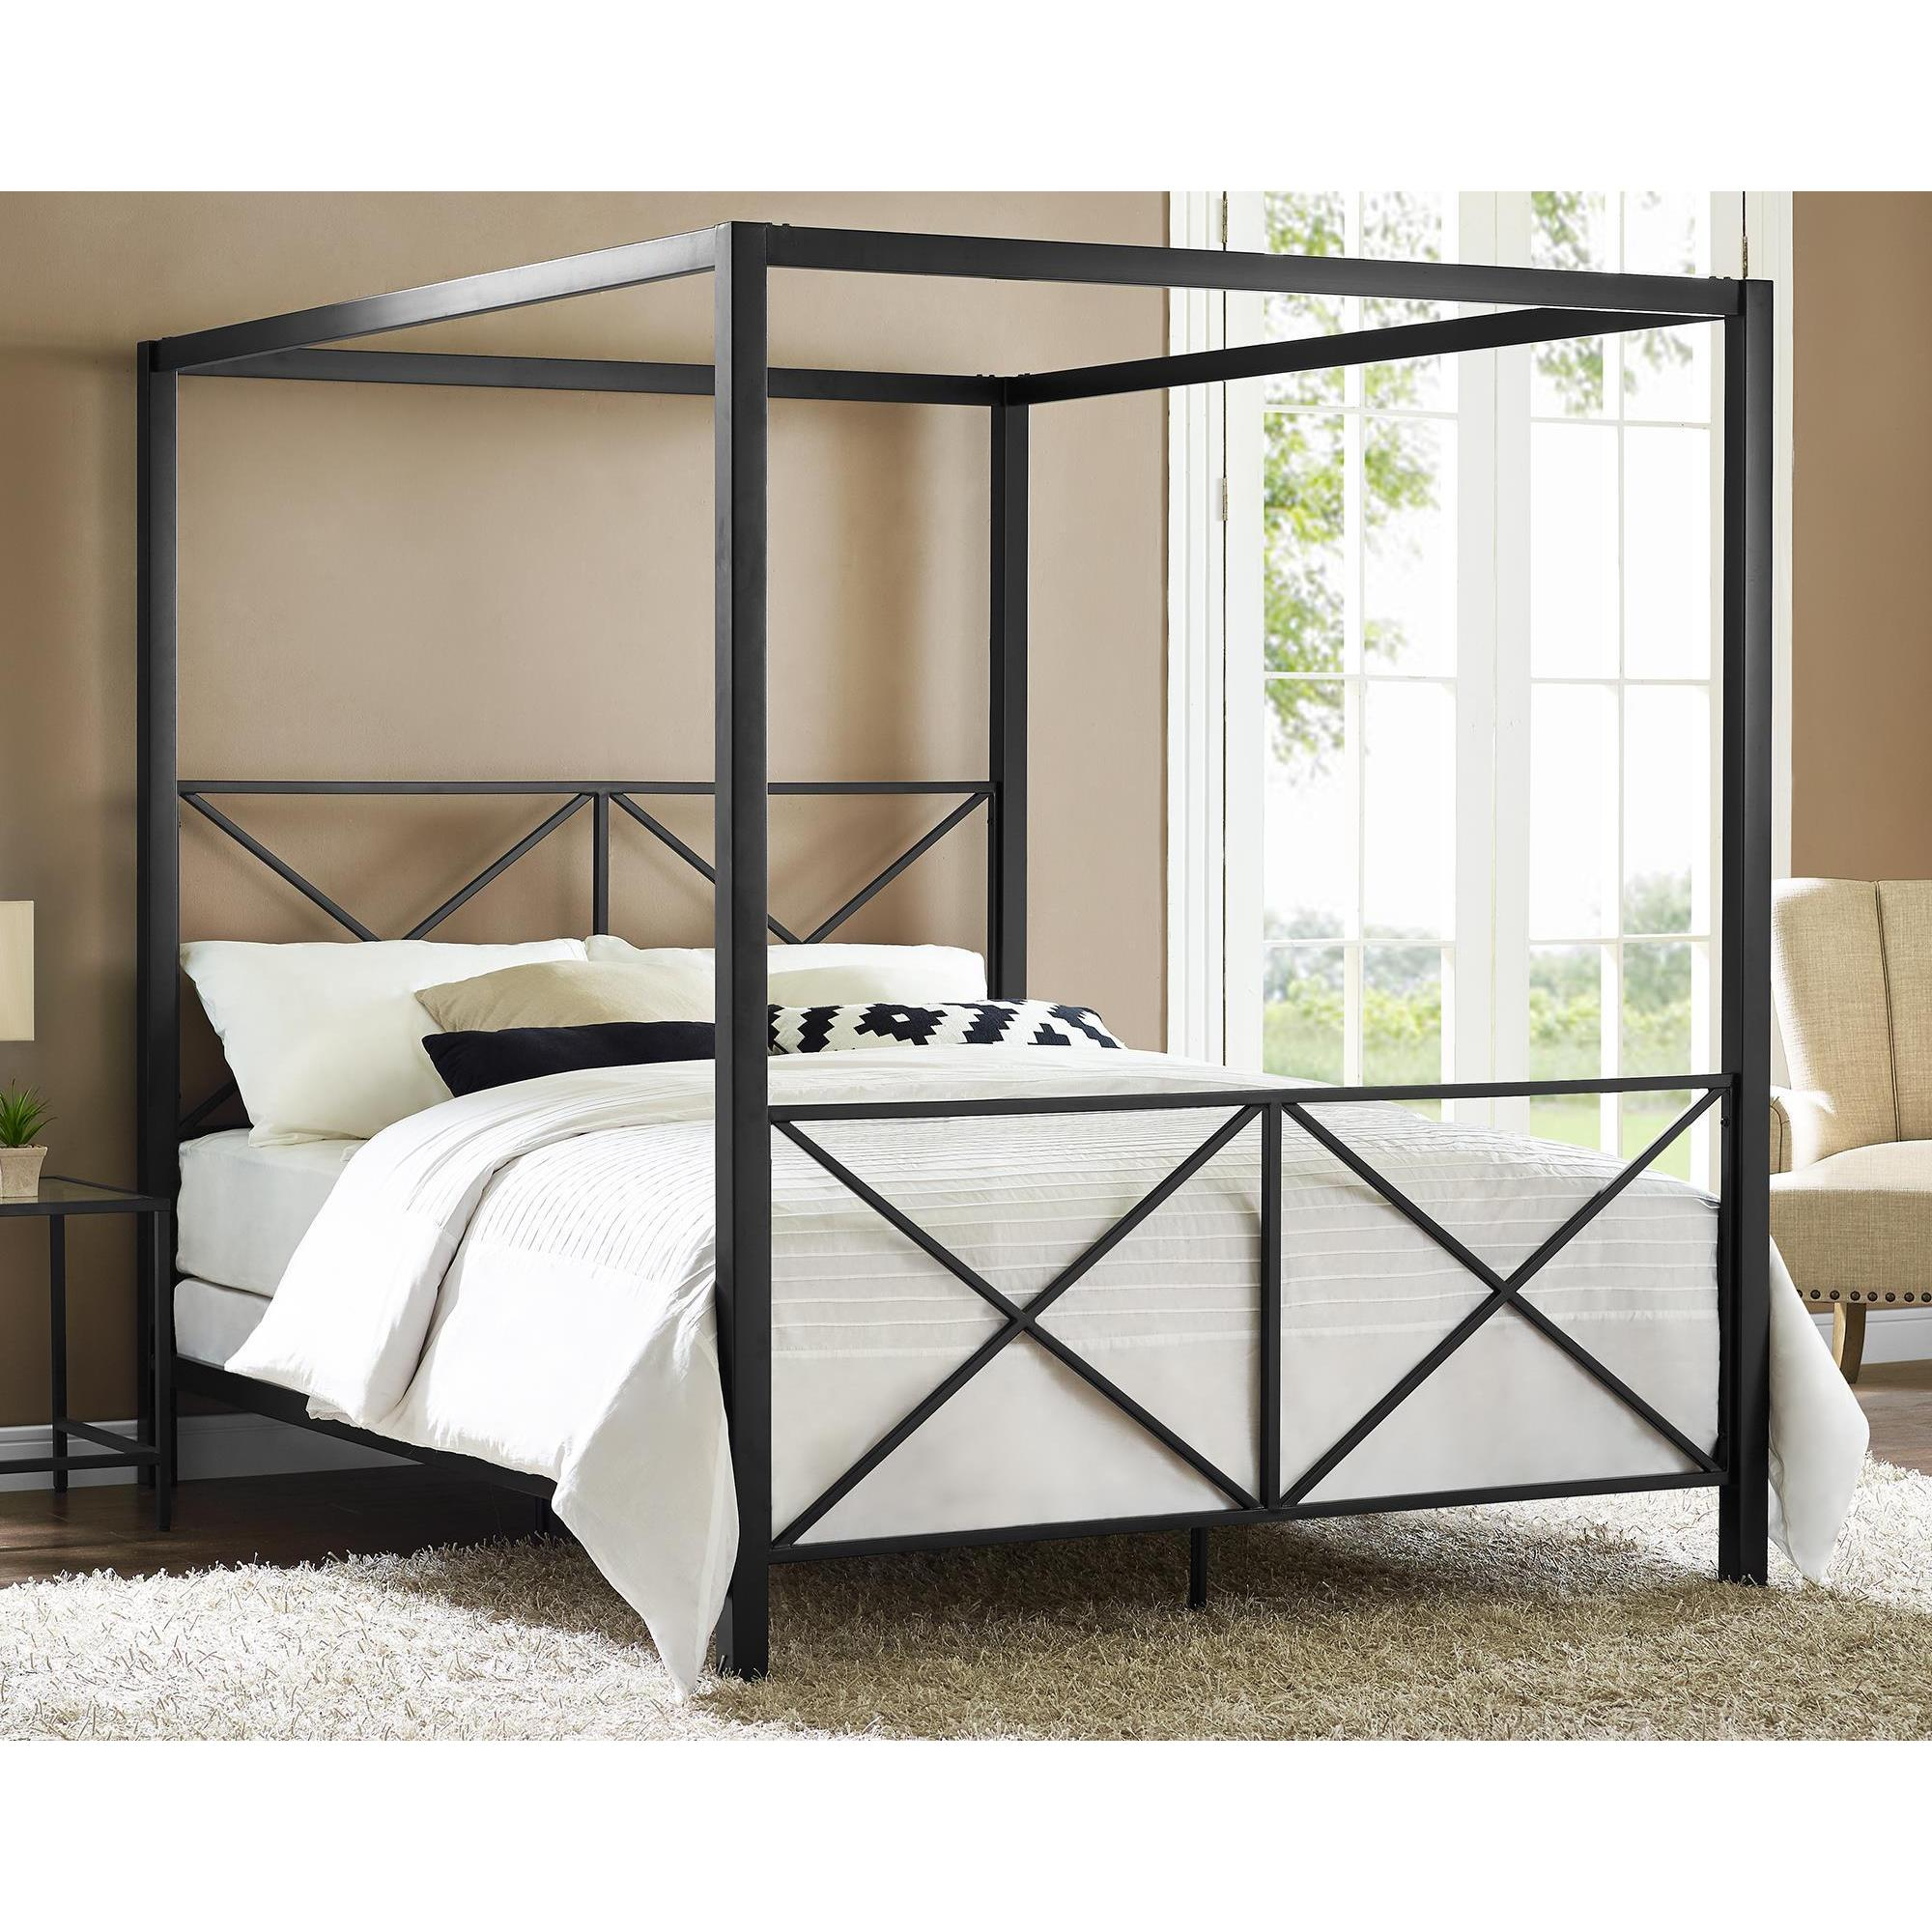 Avenue Greene DHP Rosedale Black Canopy Queen Bed (Queen ...